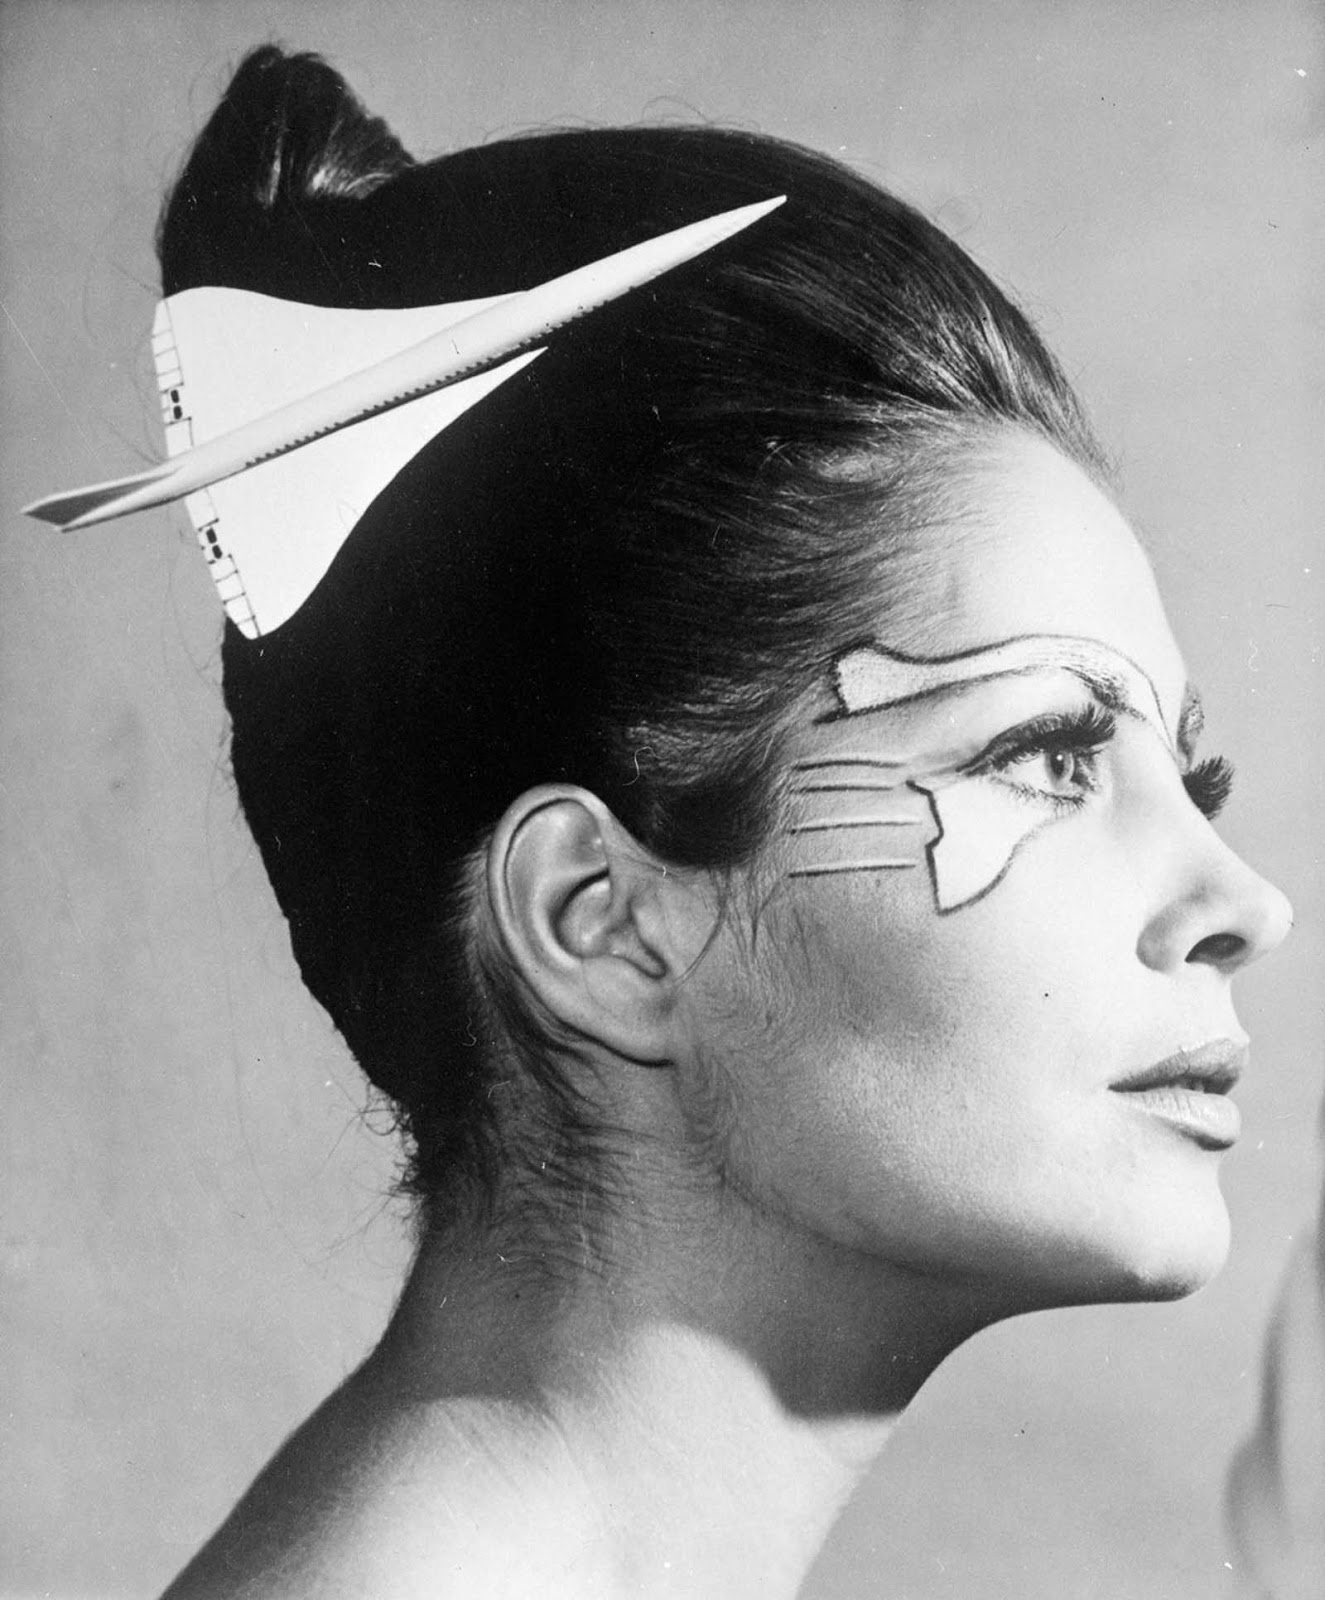 A model with makeup and hairstyle inspired by the Concorde. 1969.